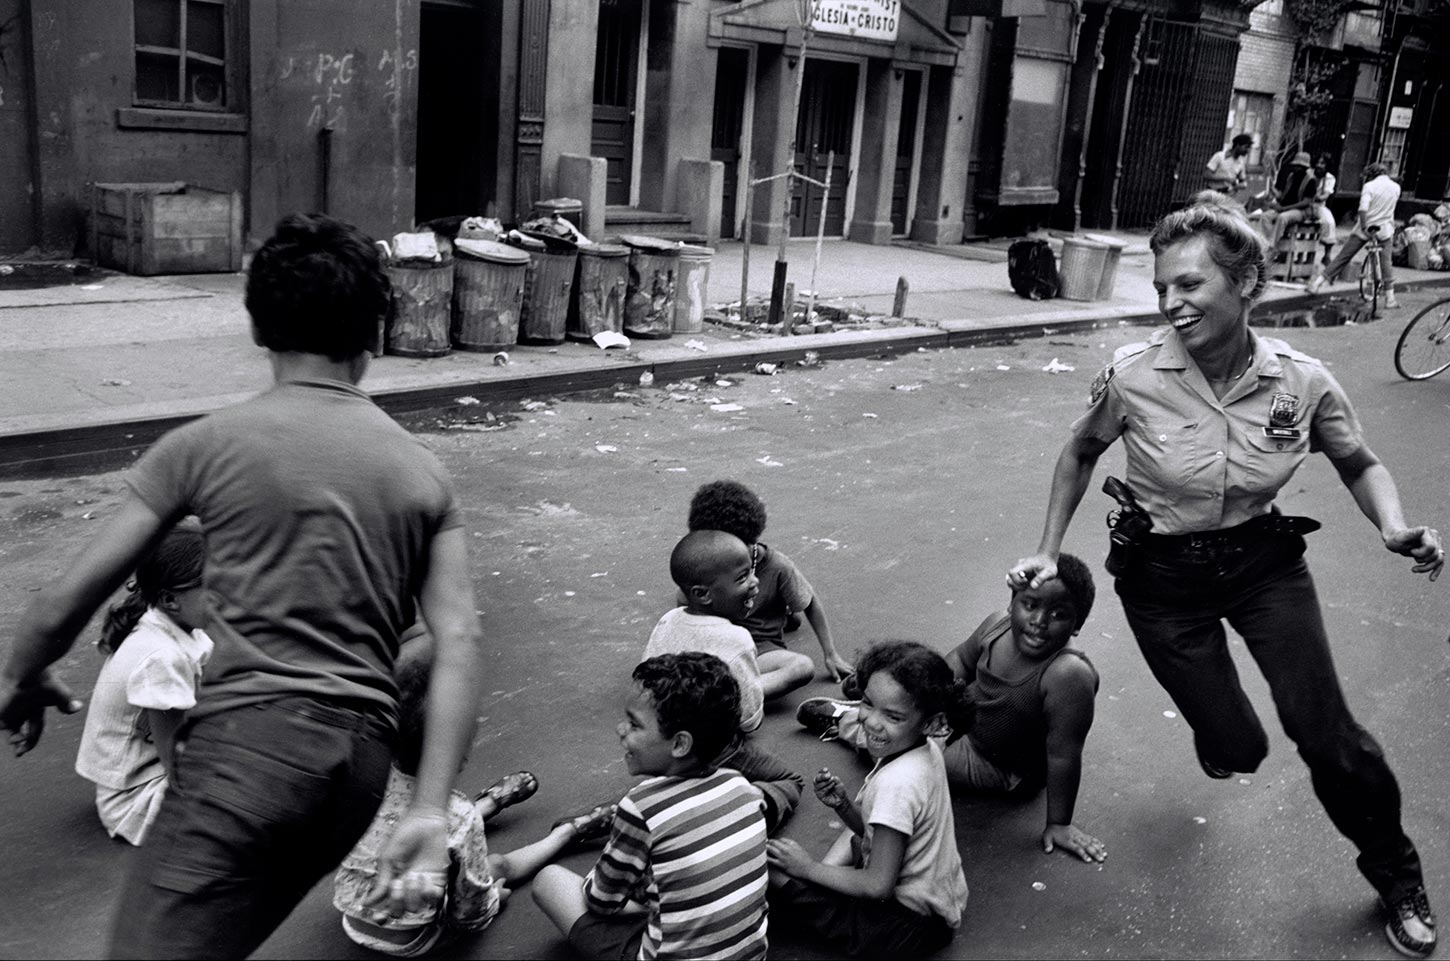 A policewoman plays with local kids in Harlem. New York City, New York. 1978.